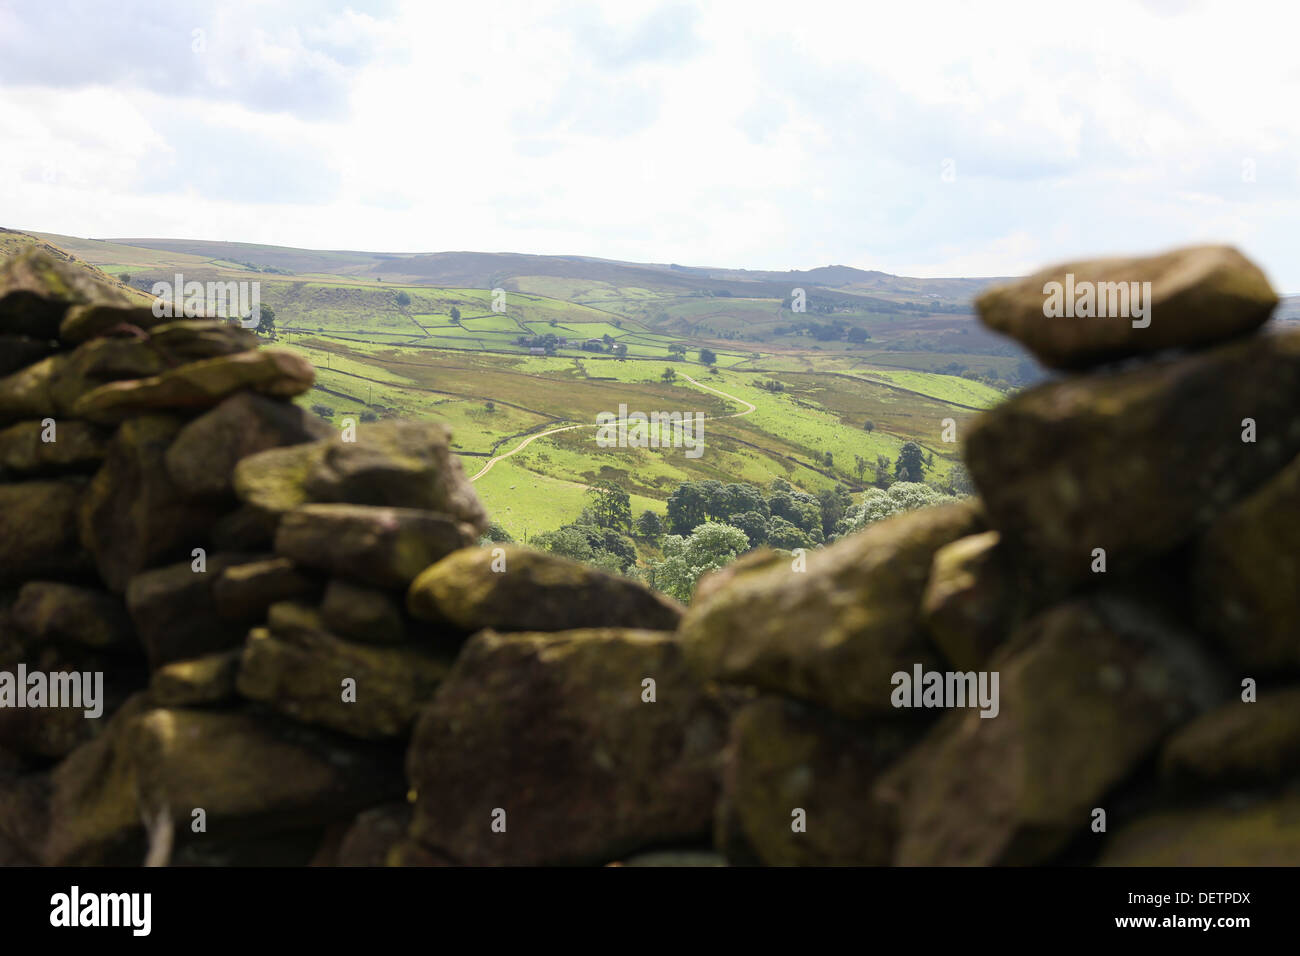 Looking through a dry stone wall towards Staffordshire from Cheshire moorlands - Stock Image